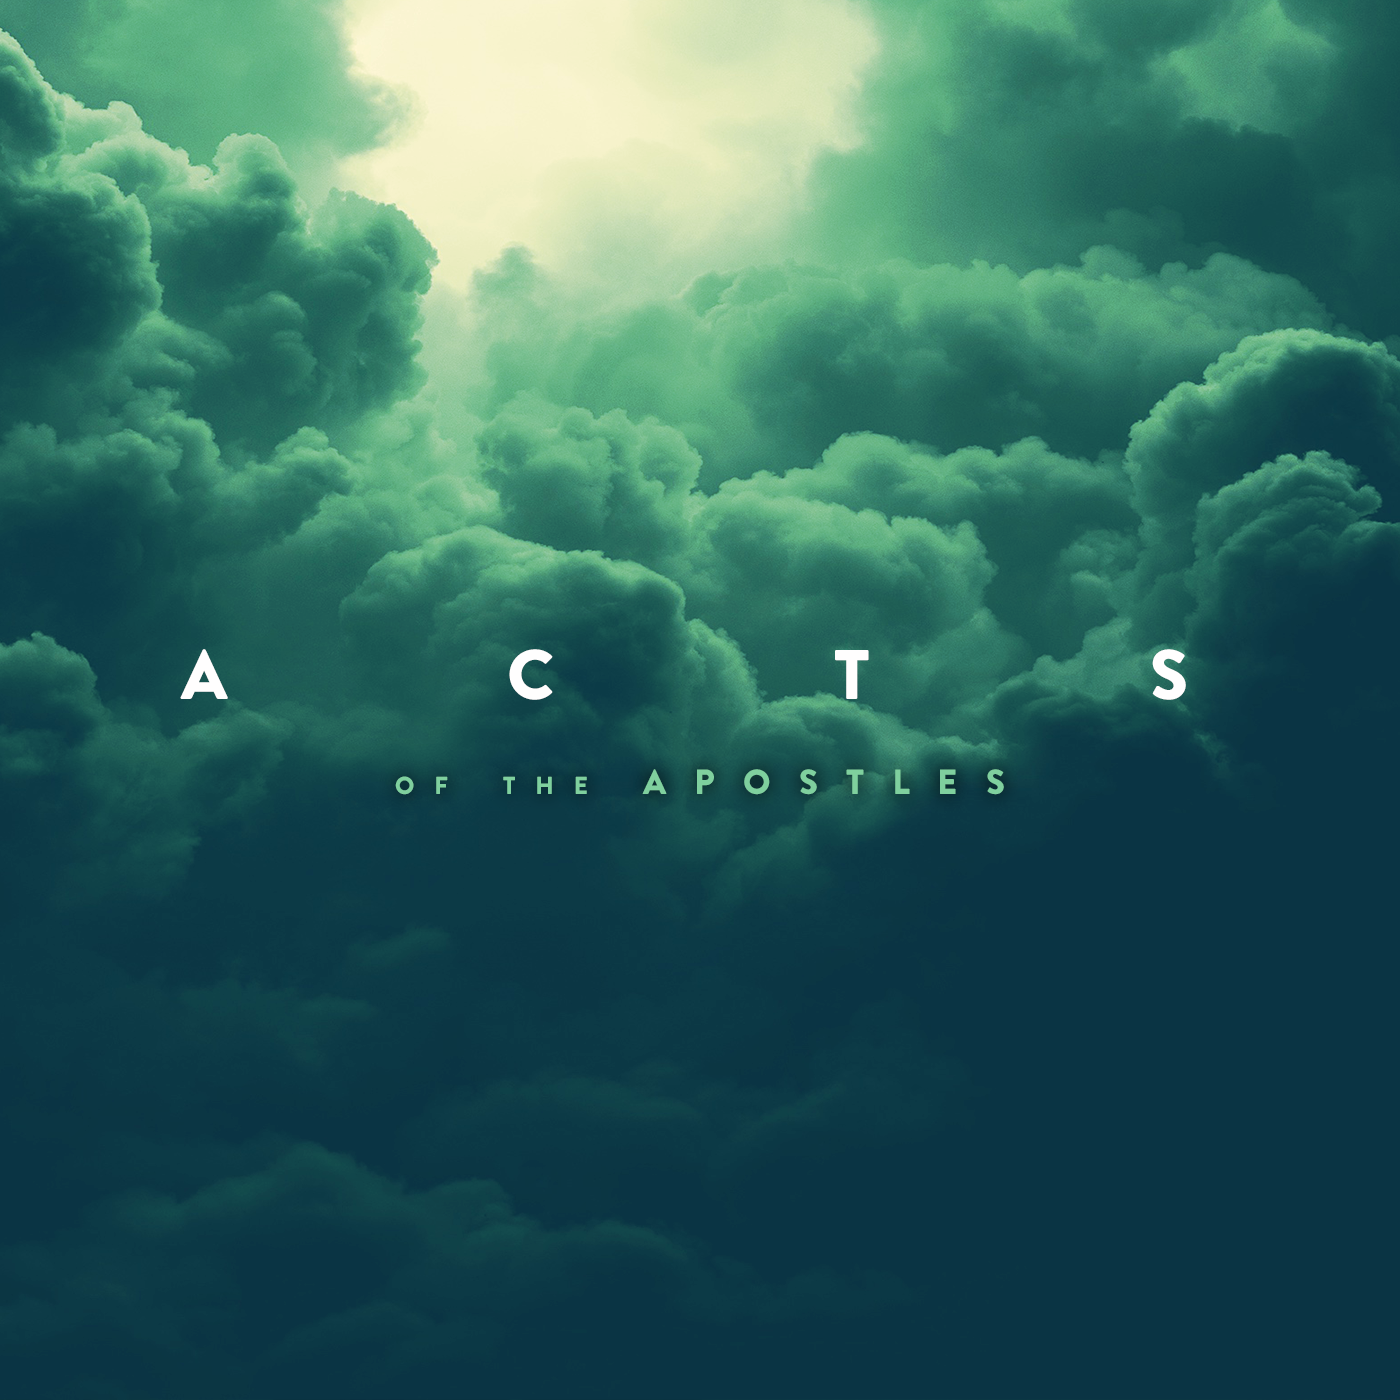 This is our sermon series on the book of Acts.